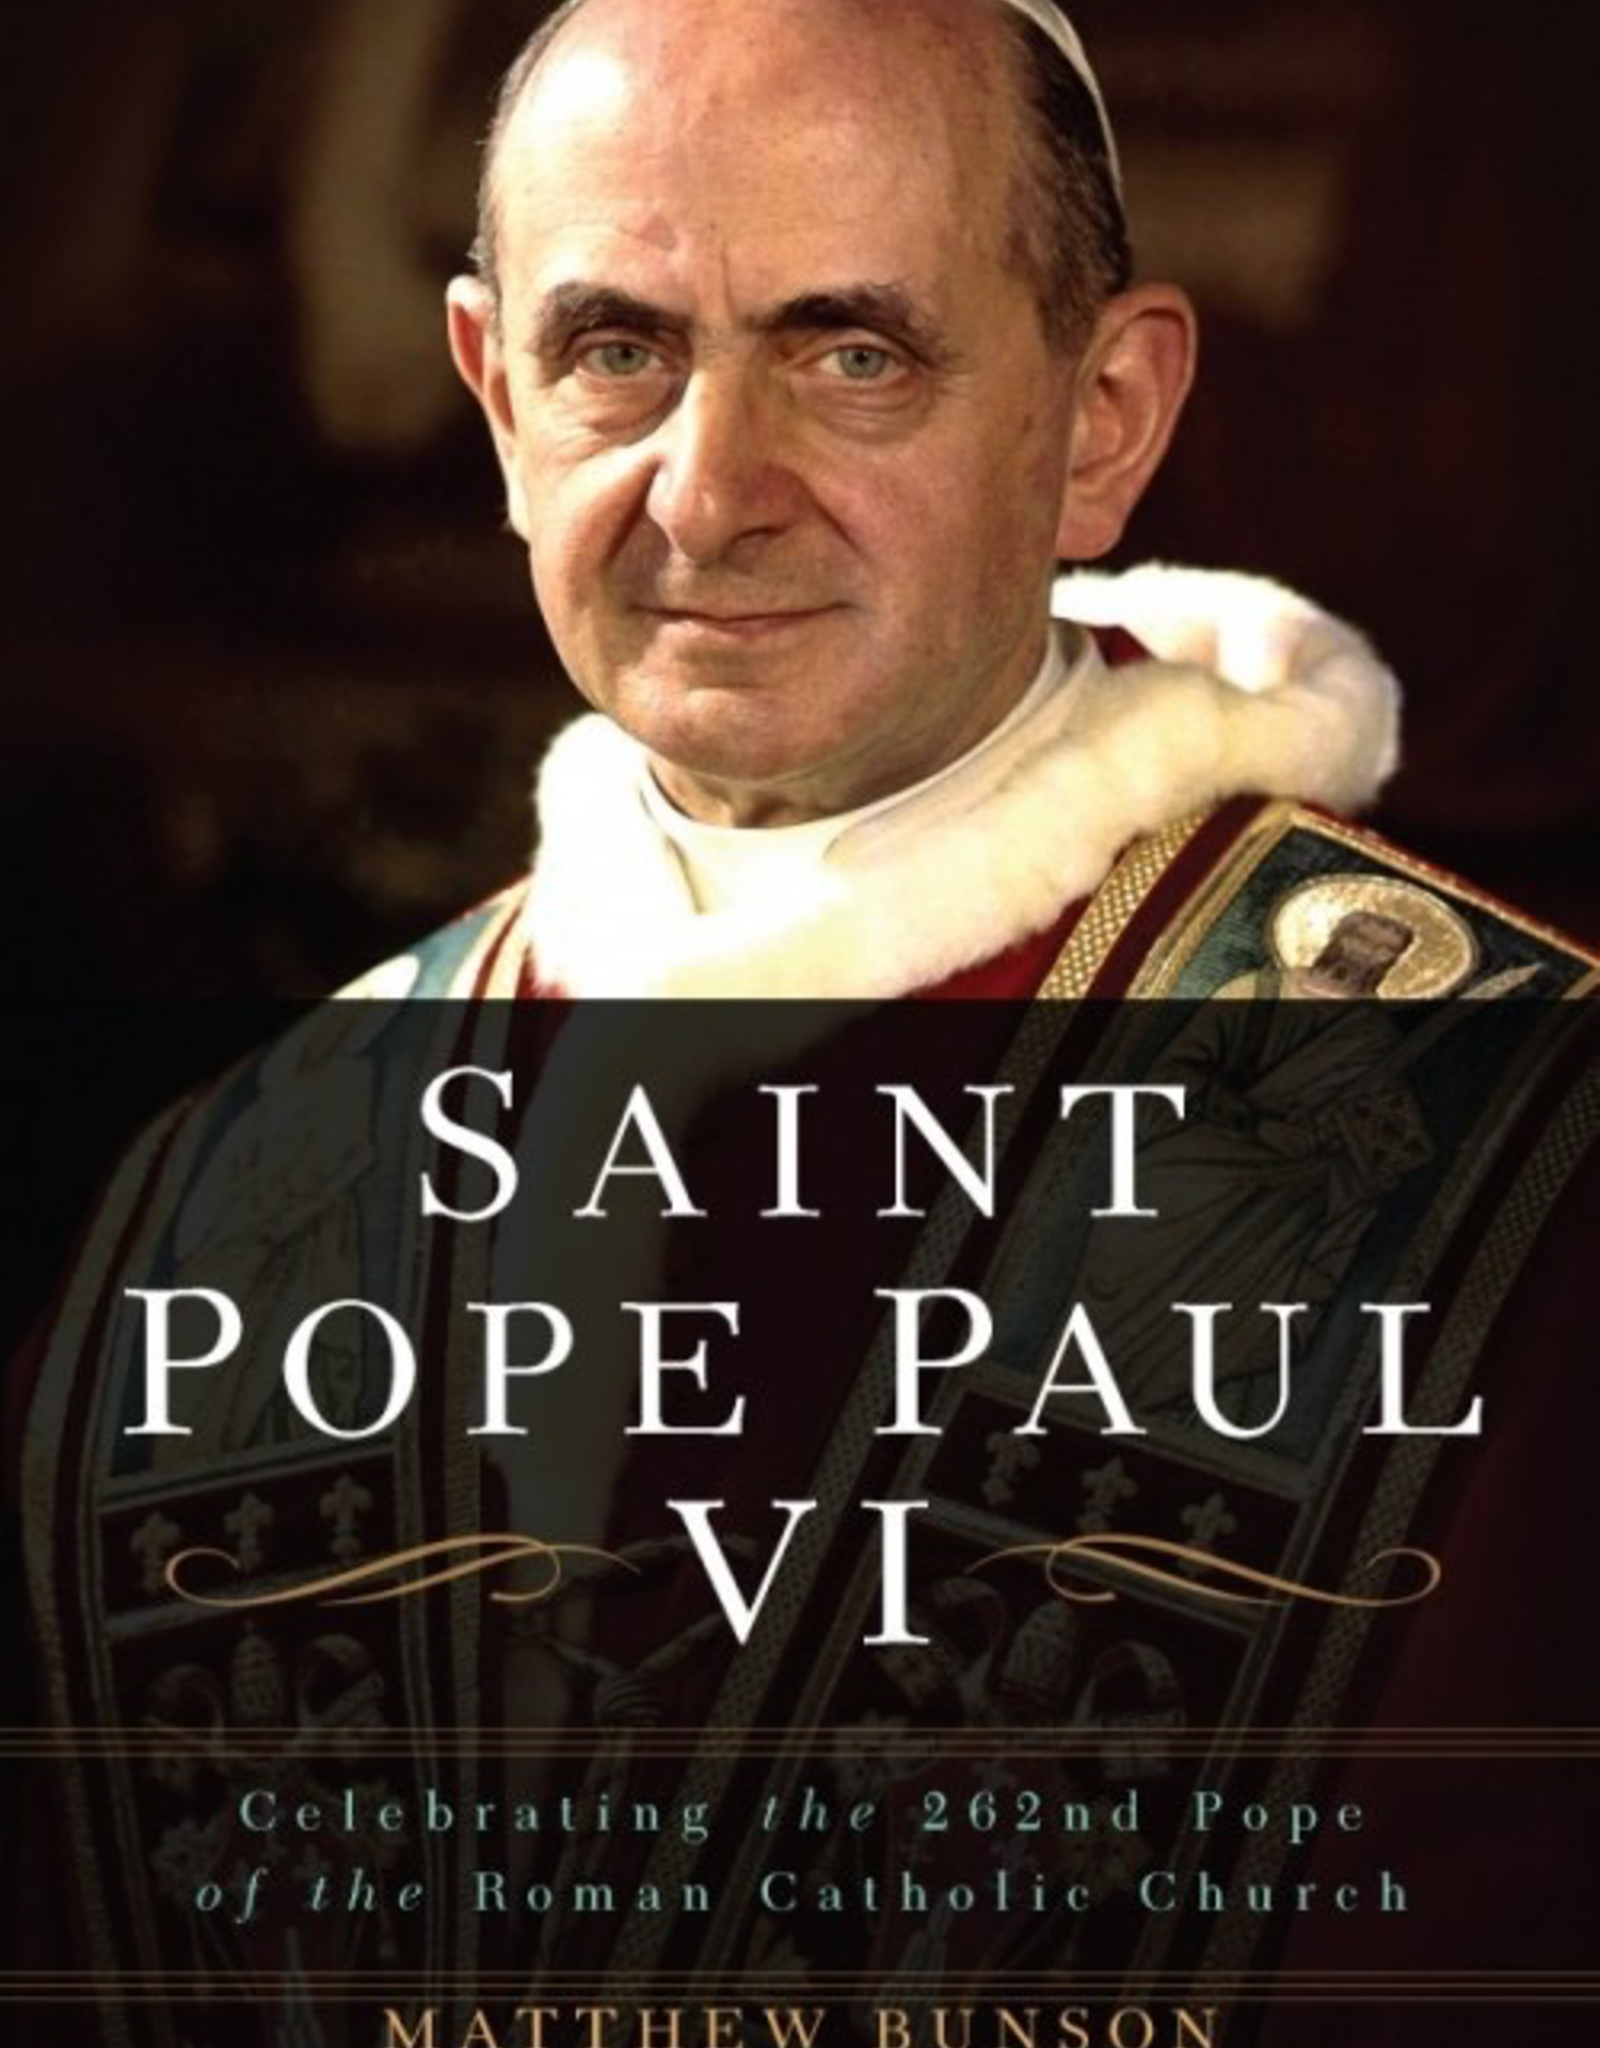 Sophia Institute Saint Pope Paul VI: Celebrating the 262nd Pope of the Roman Catholic Church, by Matthew Bunson (paperback)